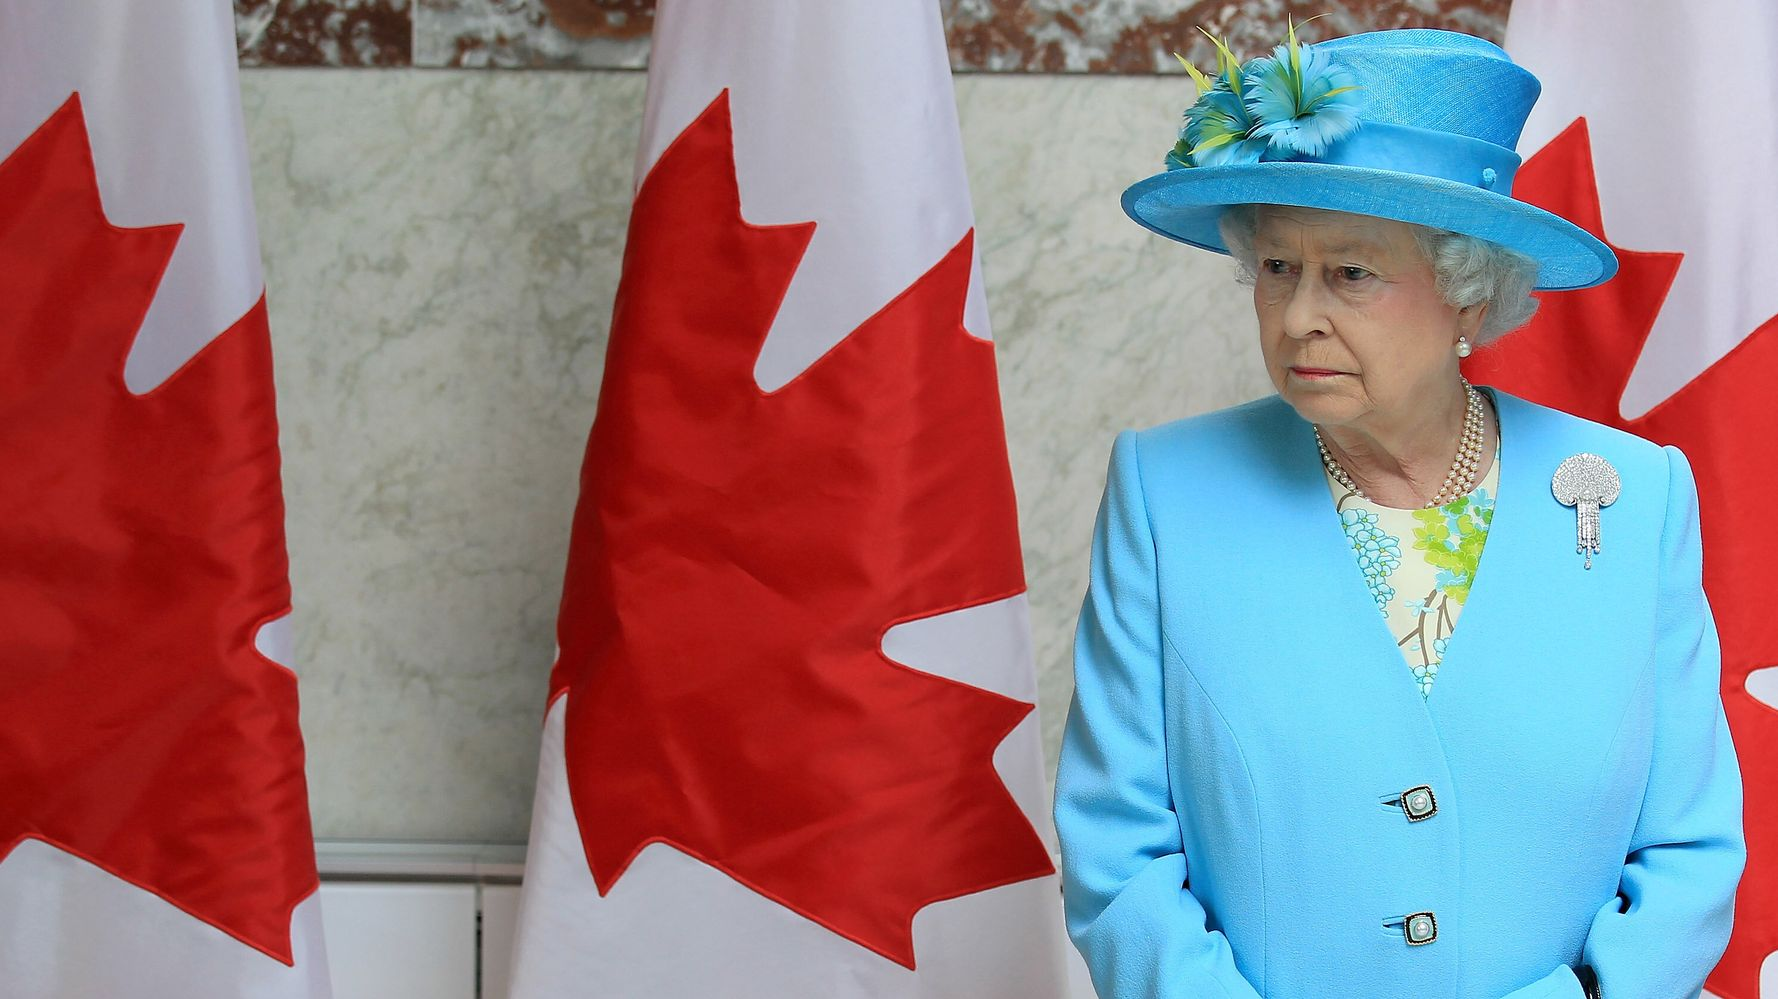 Barbados Is Ditching The Queen As Head Of State. Could That Happen In Canada?